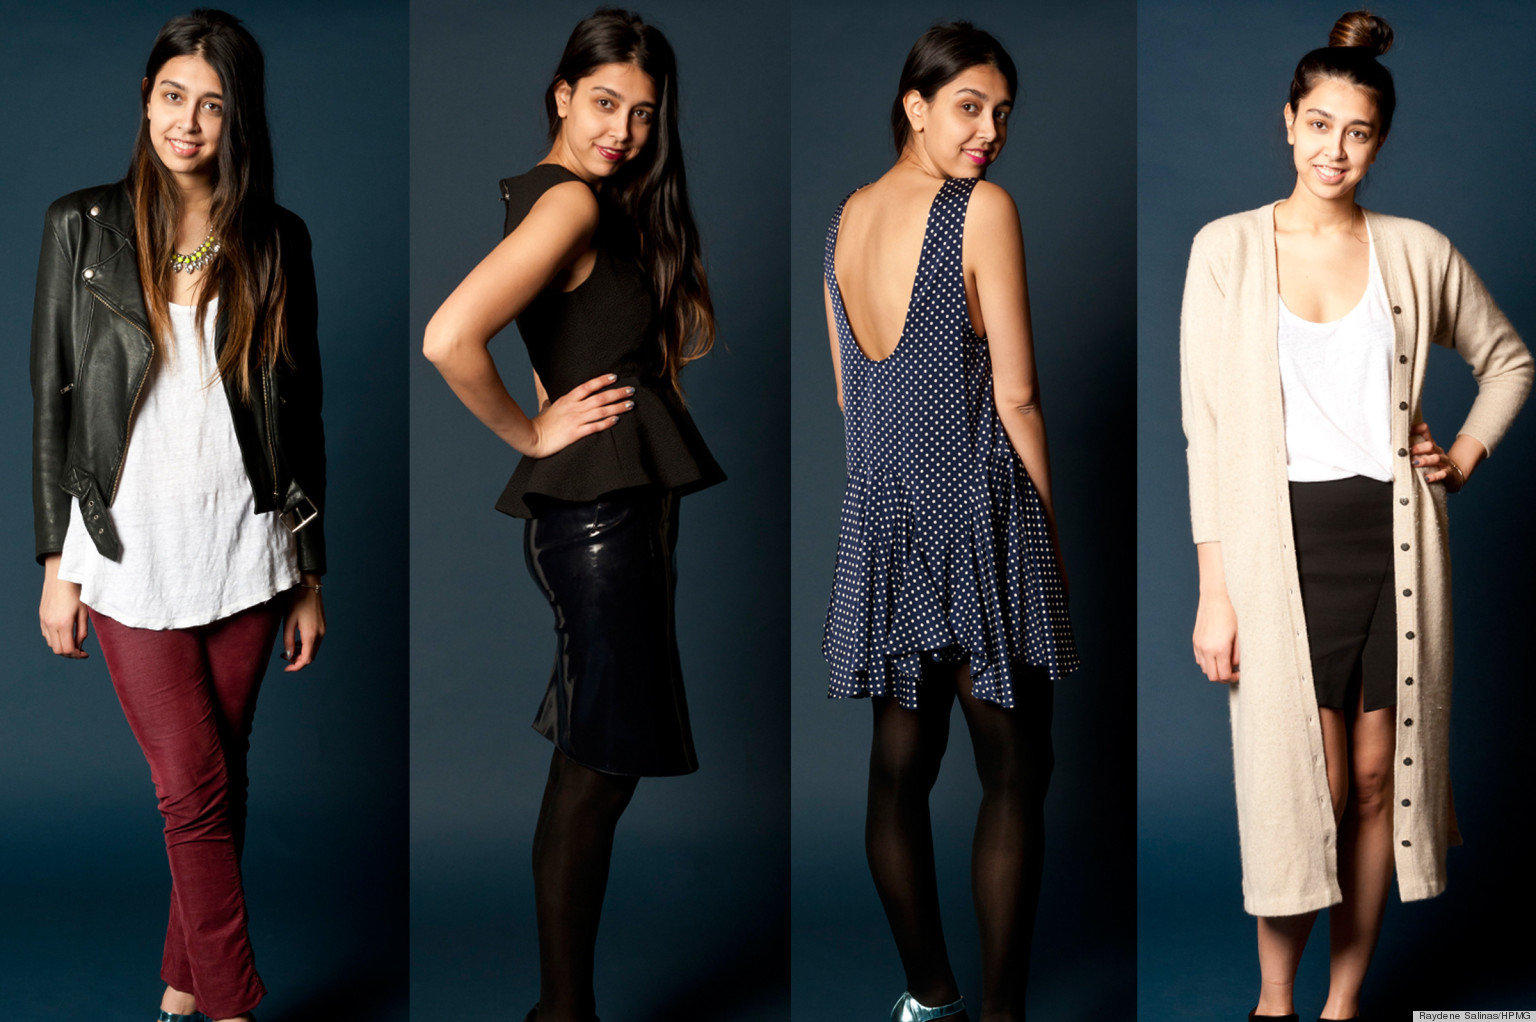 28 Outfit Ideas... From 14 Items Of Clothing (PHOTOS) | HuffPost